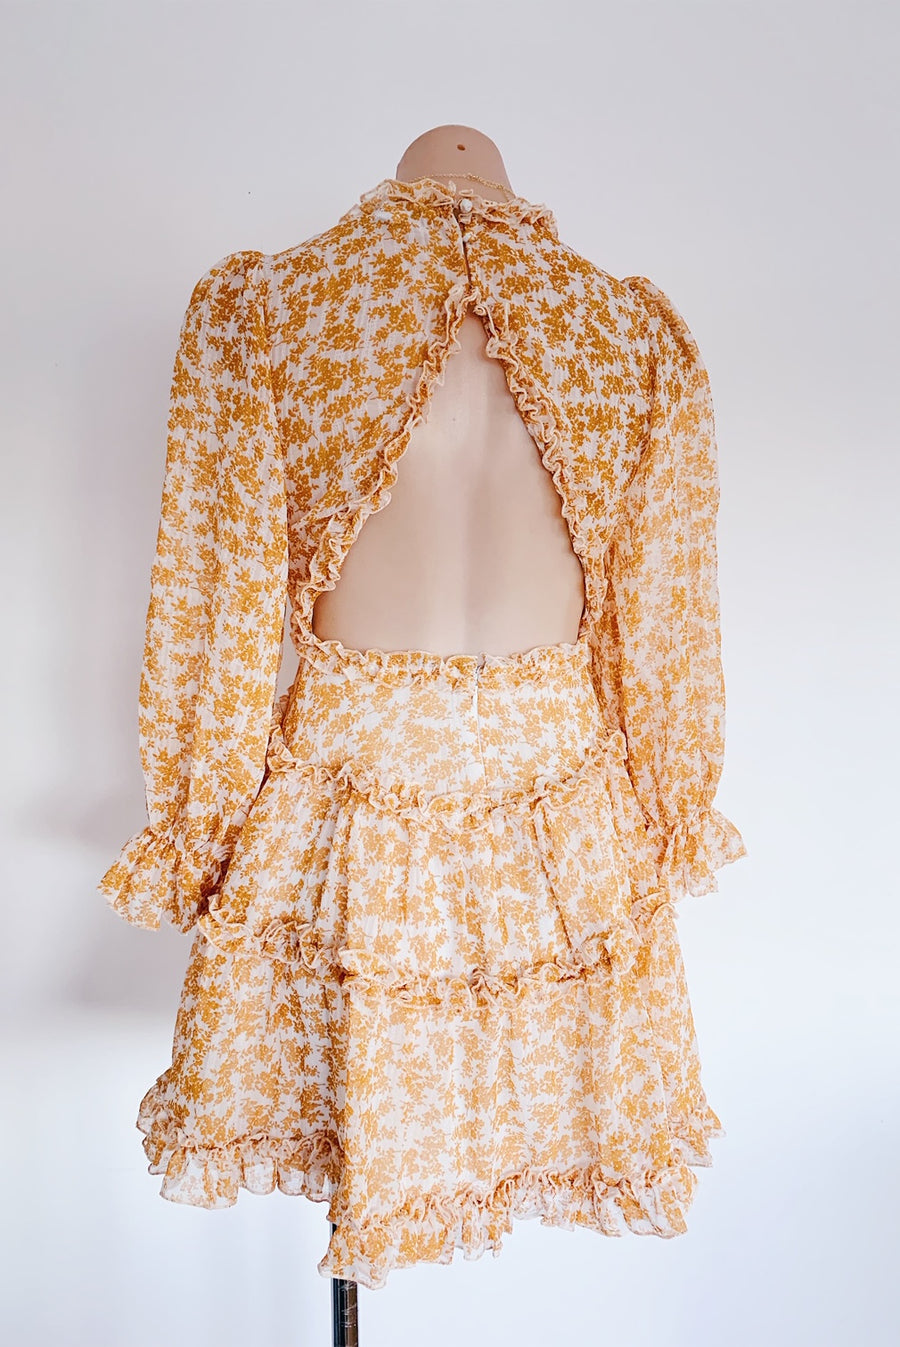 yellow floral dress with ruffle detailing and open back